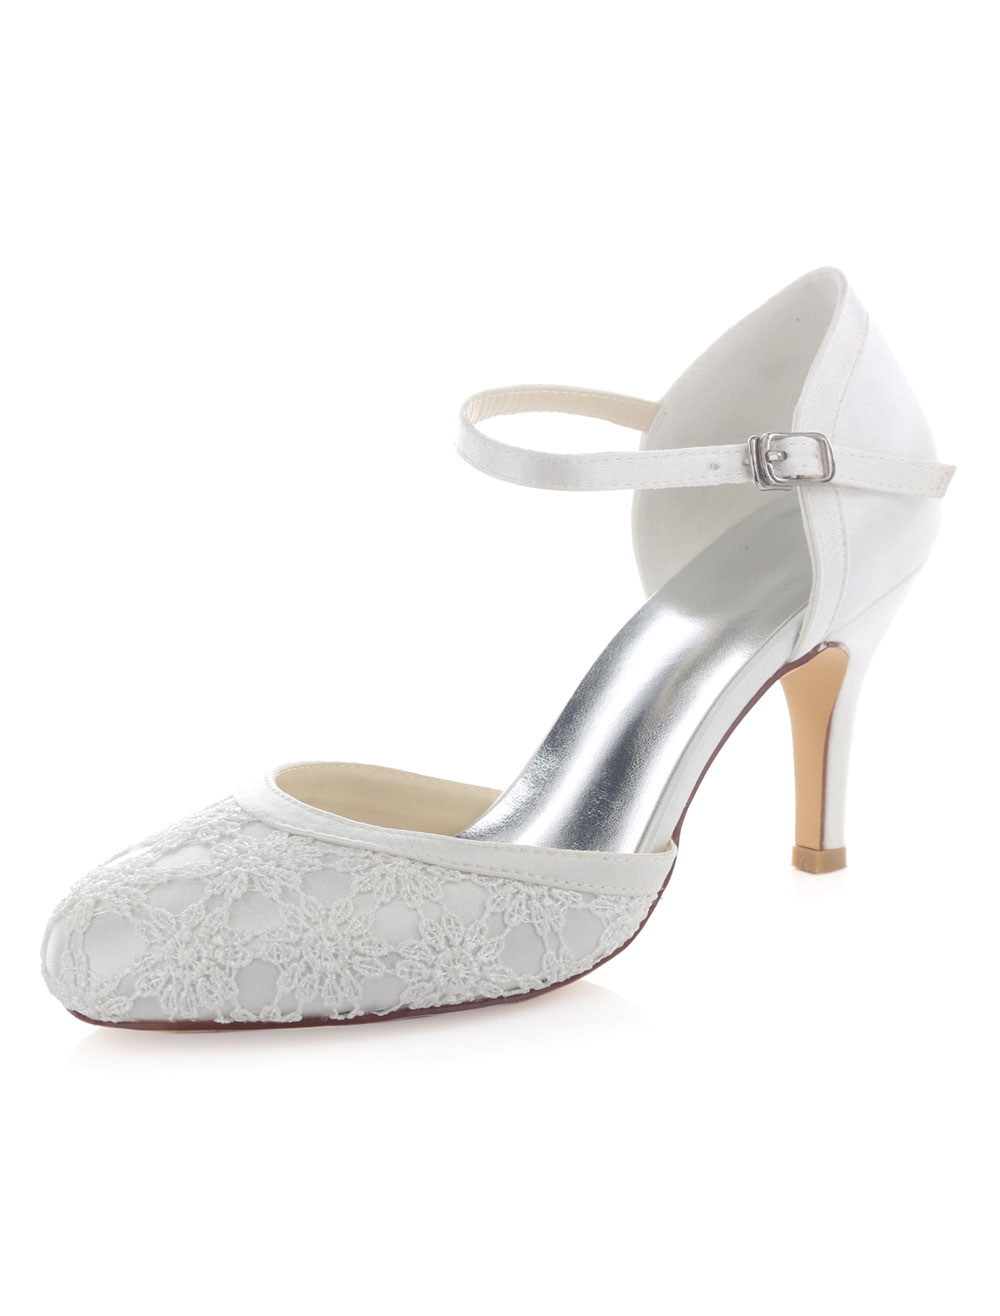 White Wedding Shoes Lace Round Toe Adjustable Strap Buckle High Heel Bridal Shoes